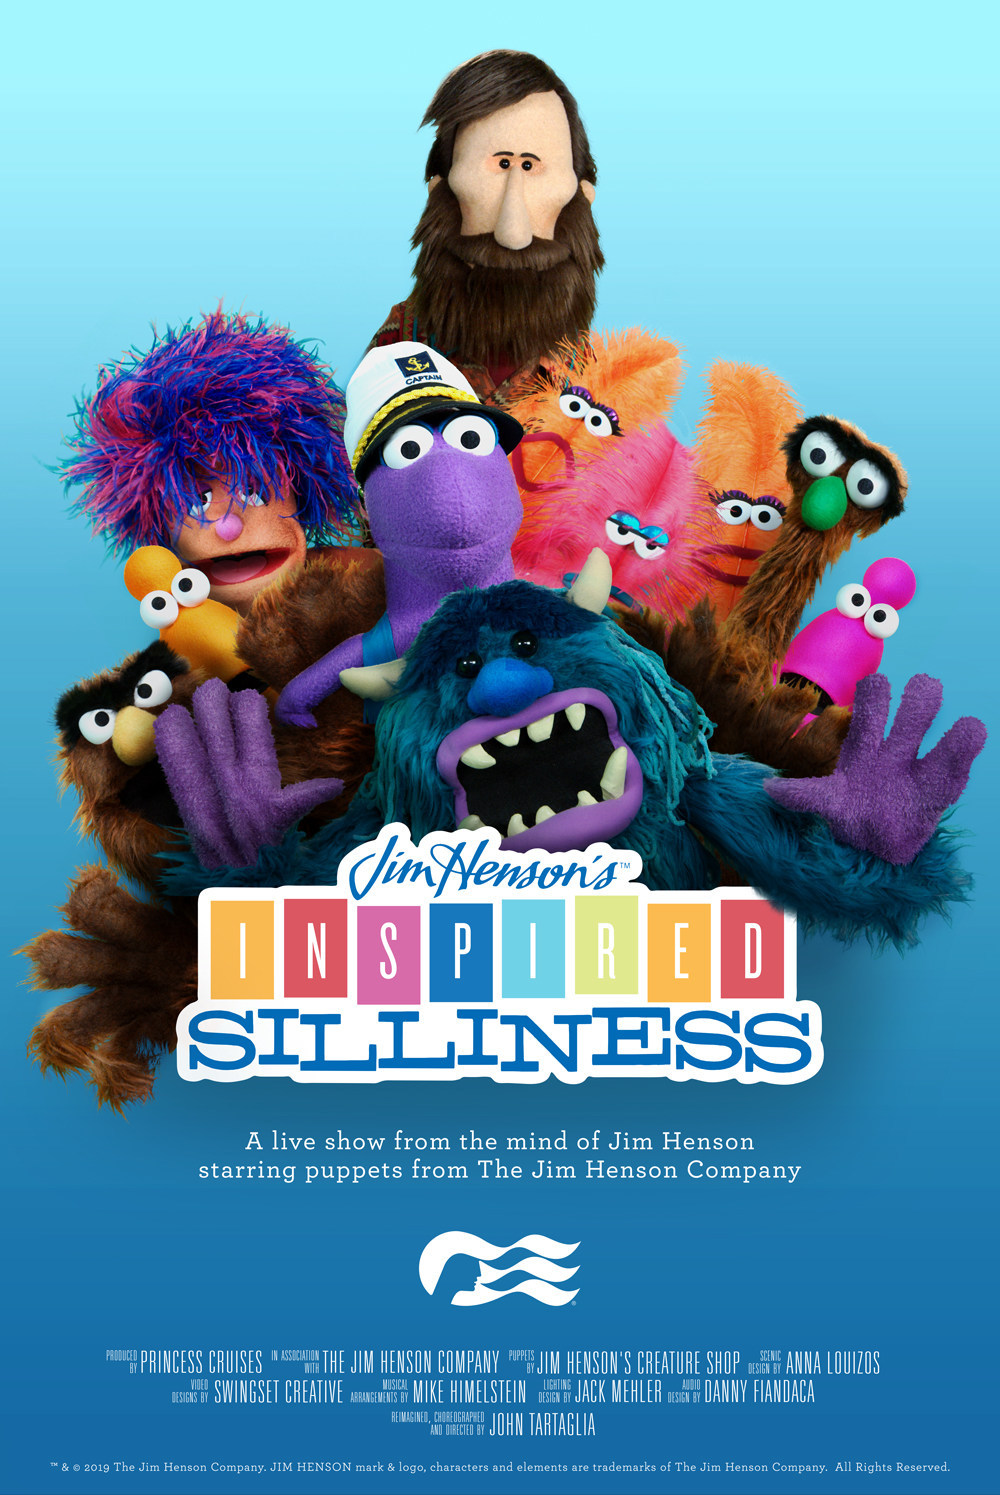 Jim Henson's Inspired Silliness Puppet Show to Debut Onboard New Sky Princess & Enchanted Princess